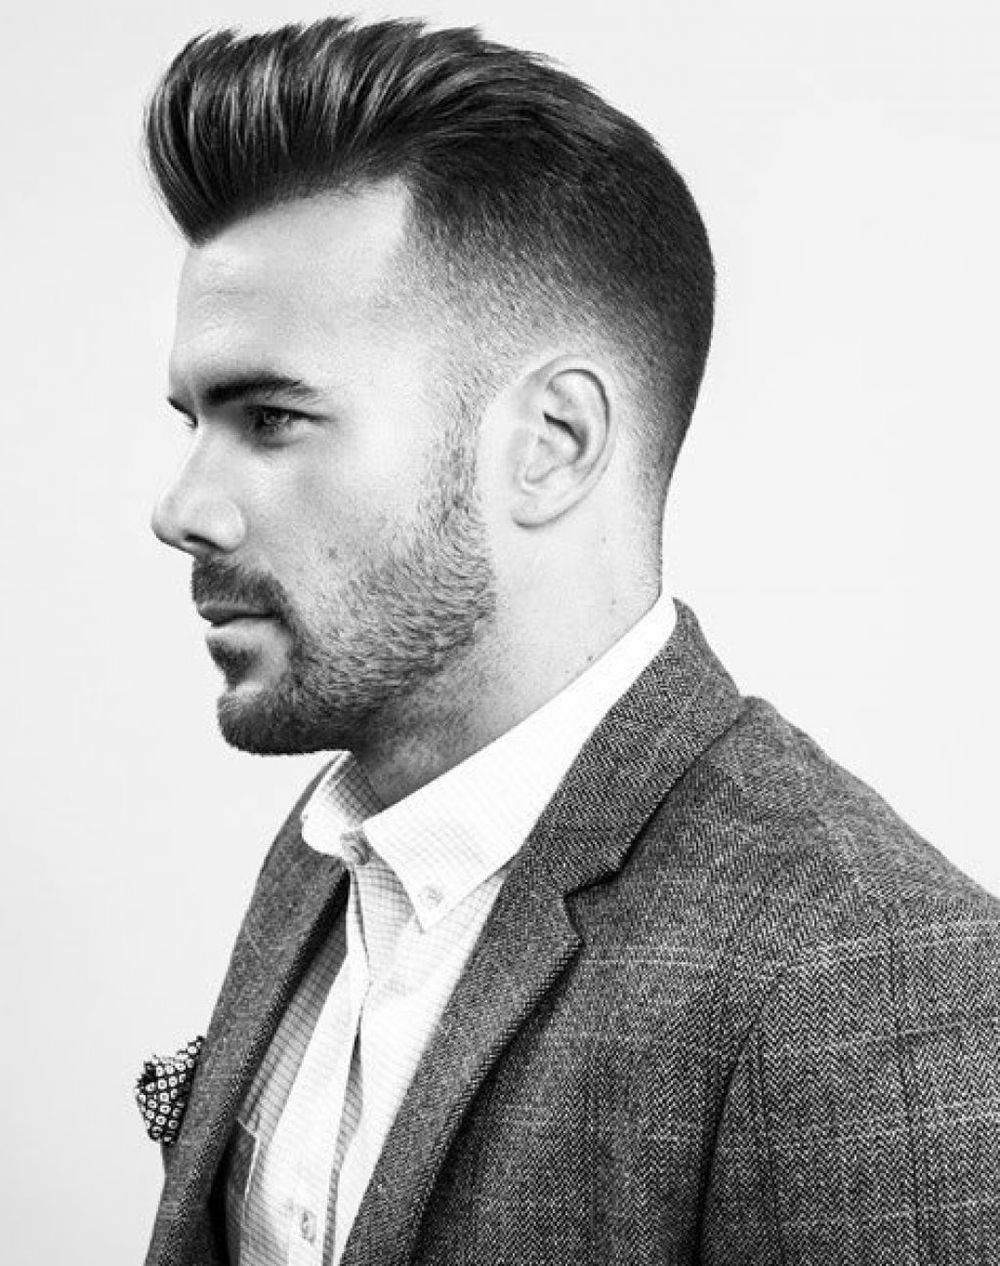 pompadour-hairstyle-men-side-view-56822b4624975.jpg